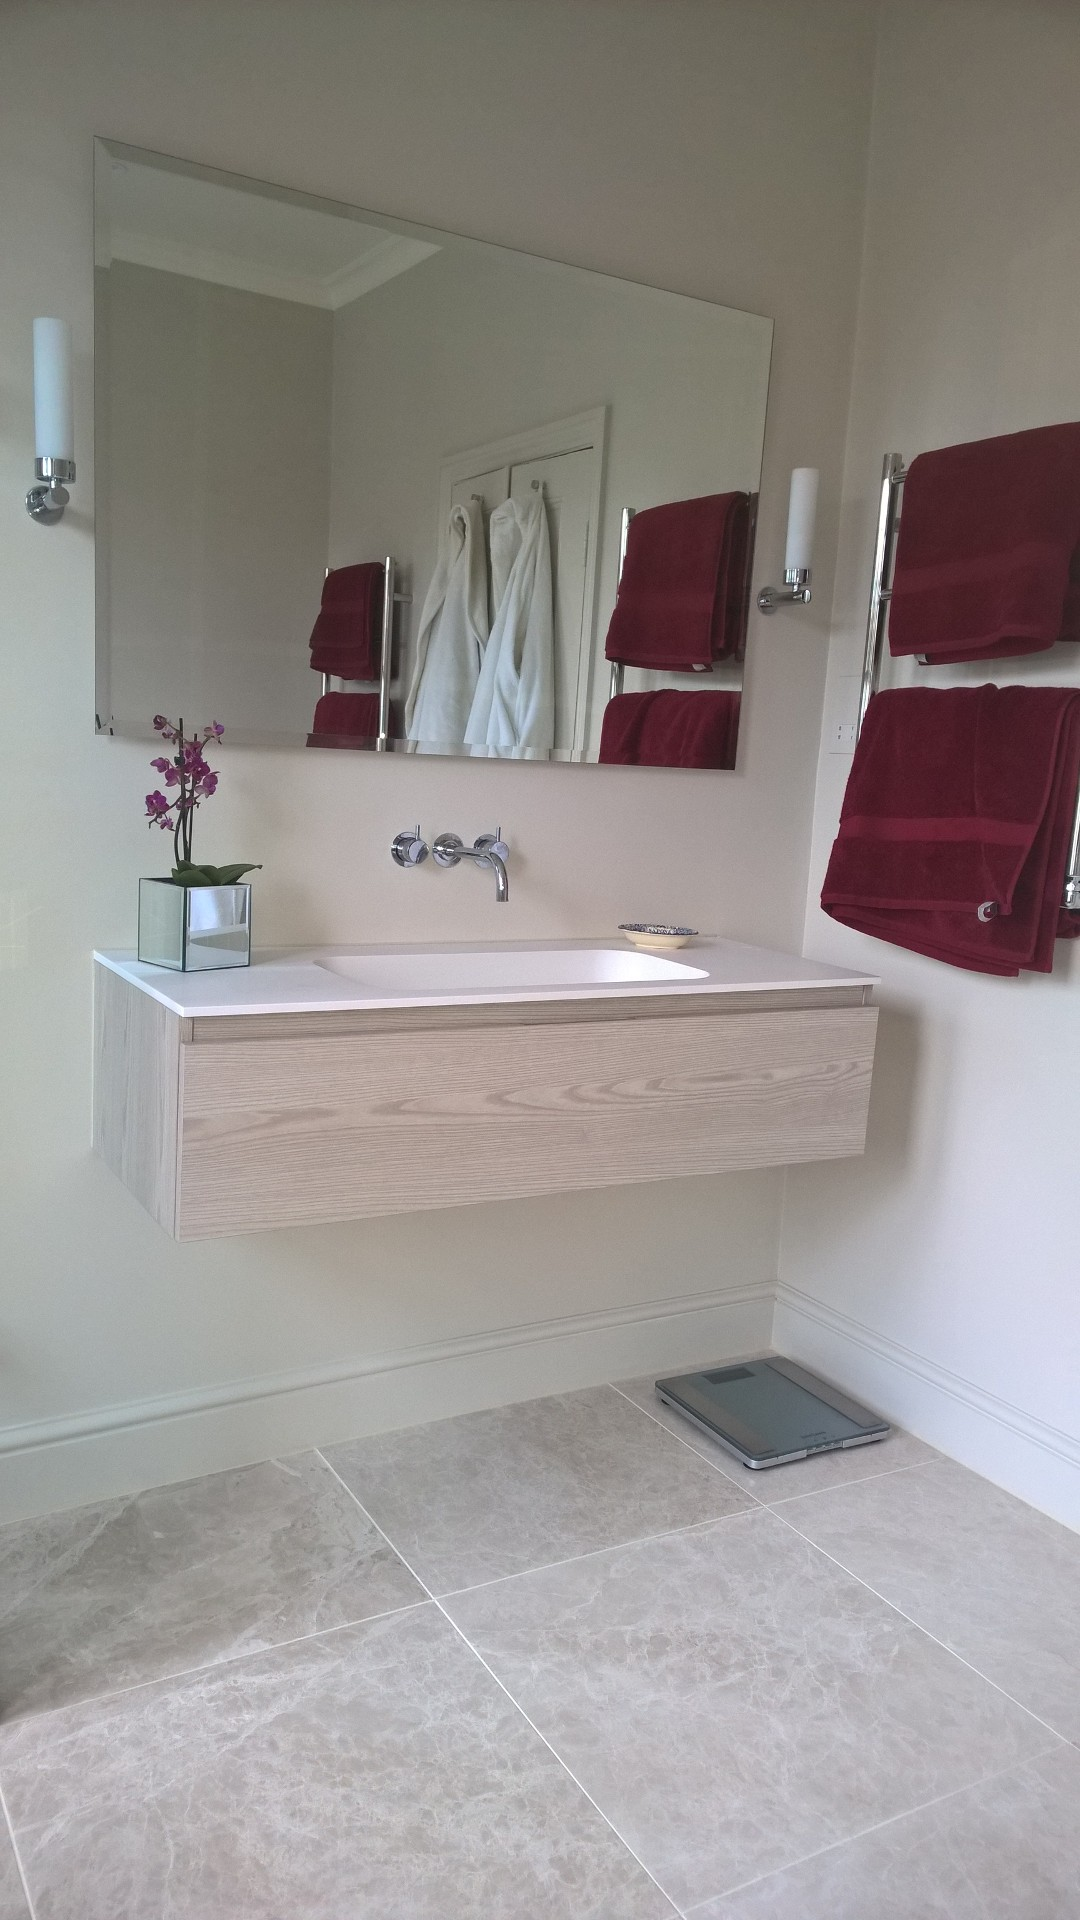 A wall hung basin unit with a mirror above and a heated towel rail